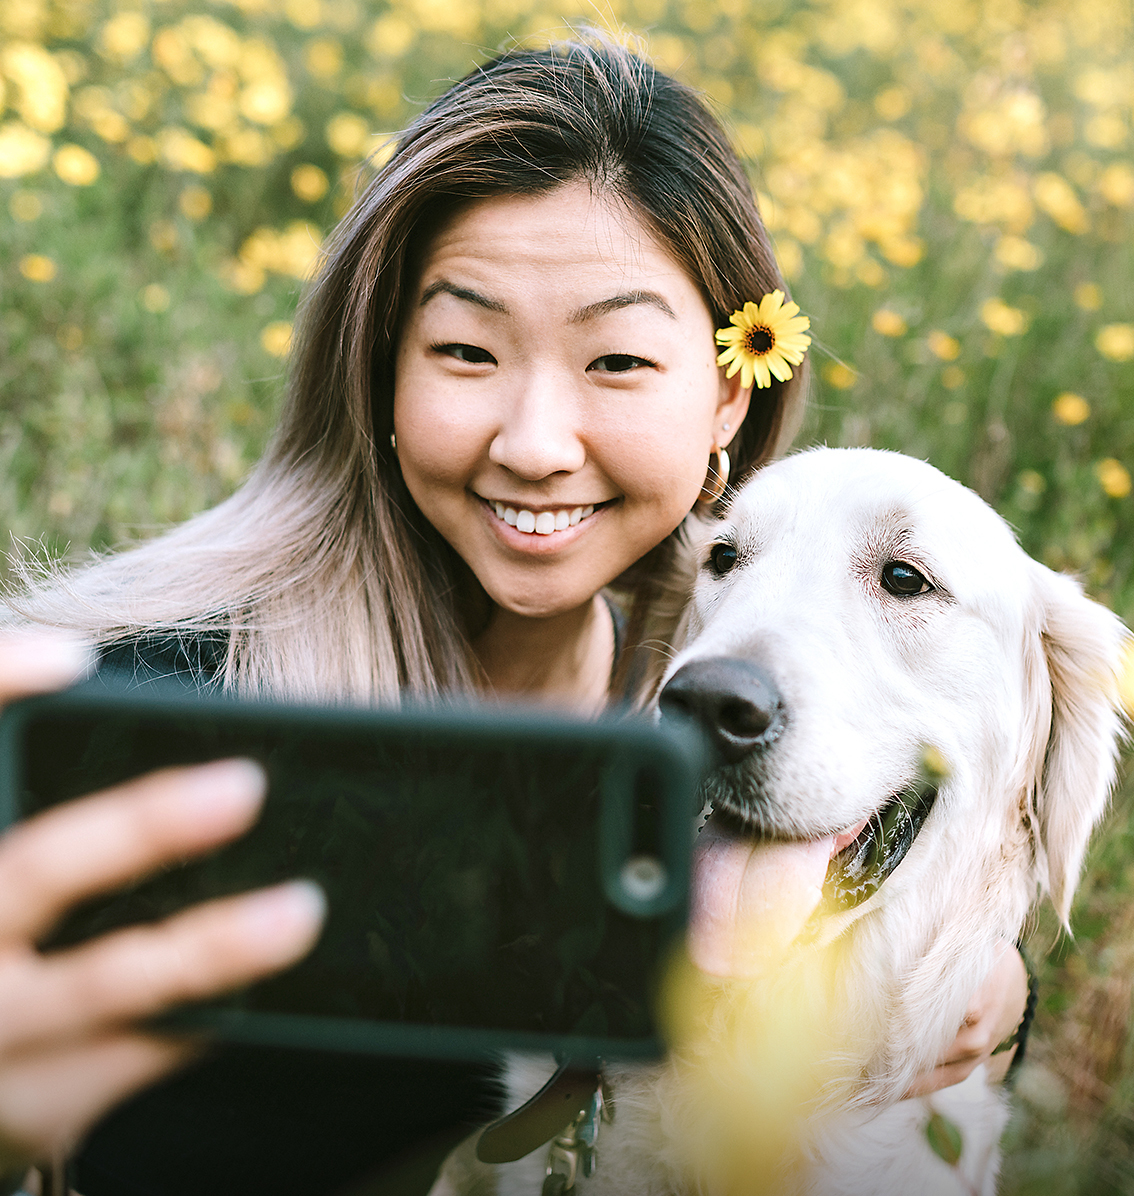 woman taking a photo with a golden retriever in a field